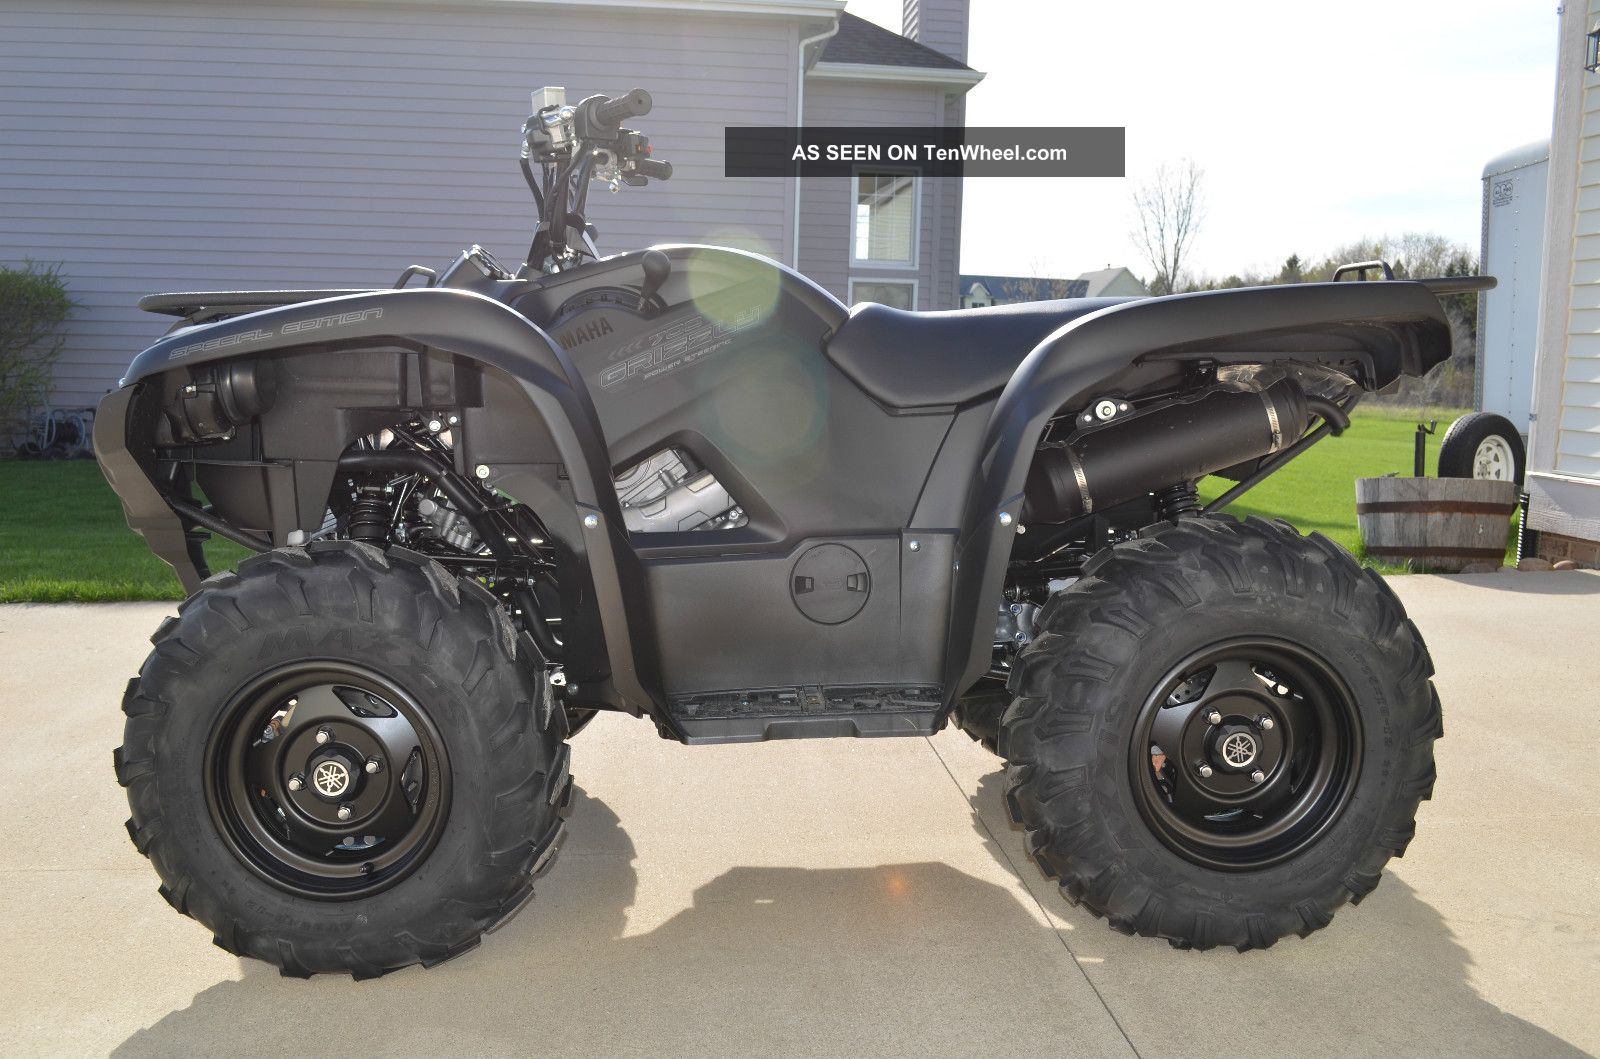 2013 yamaha grizzly 700 eps se for Yamaha grizzly 800